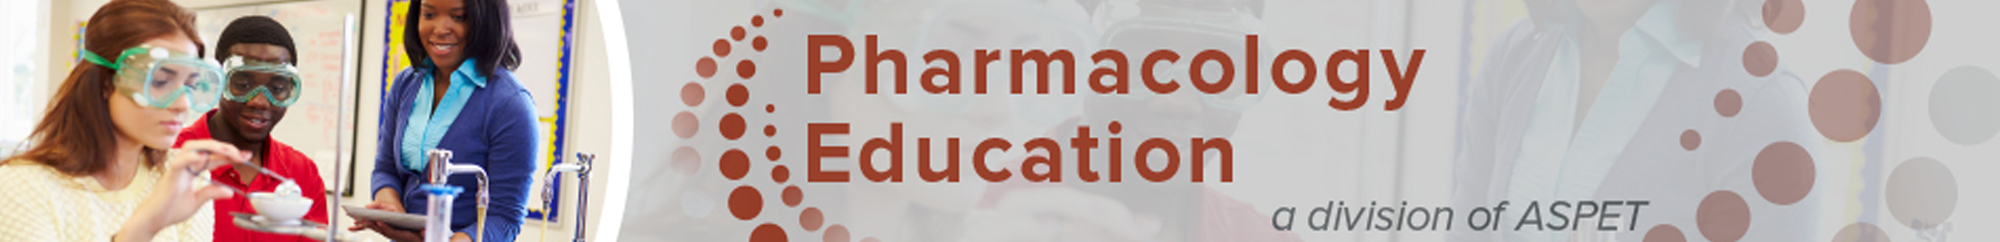 Pharmacology Education